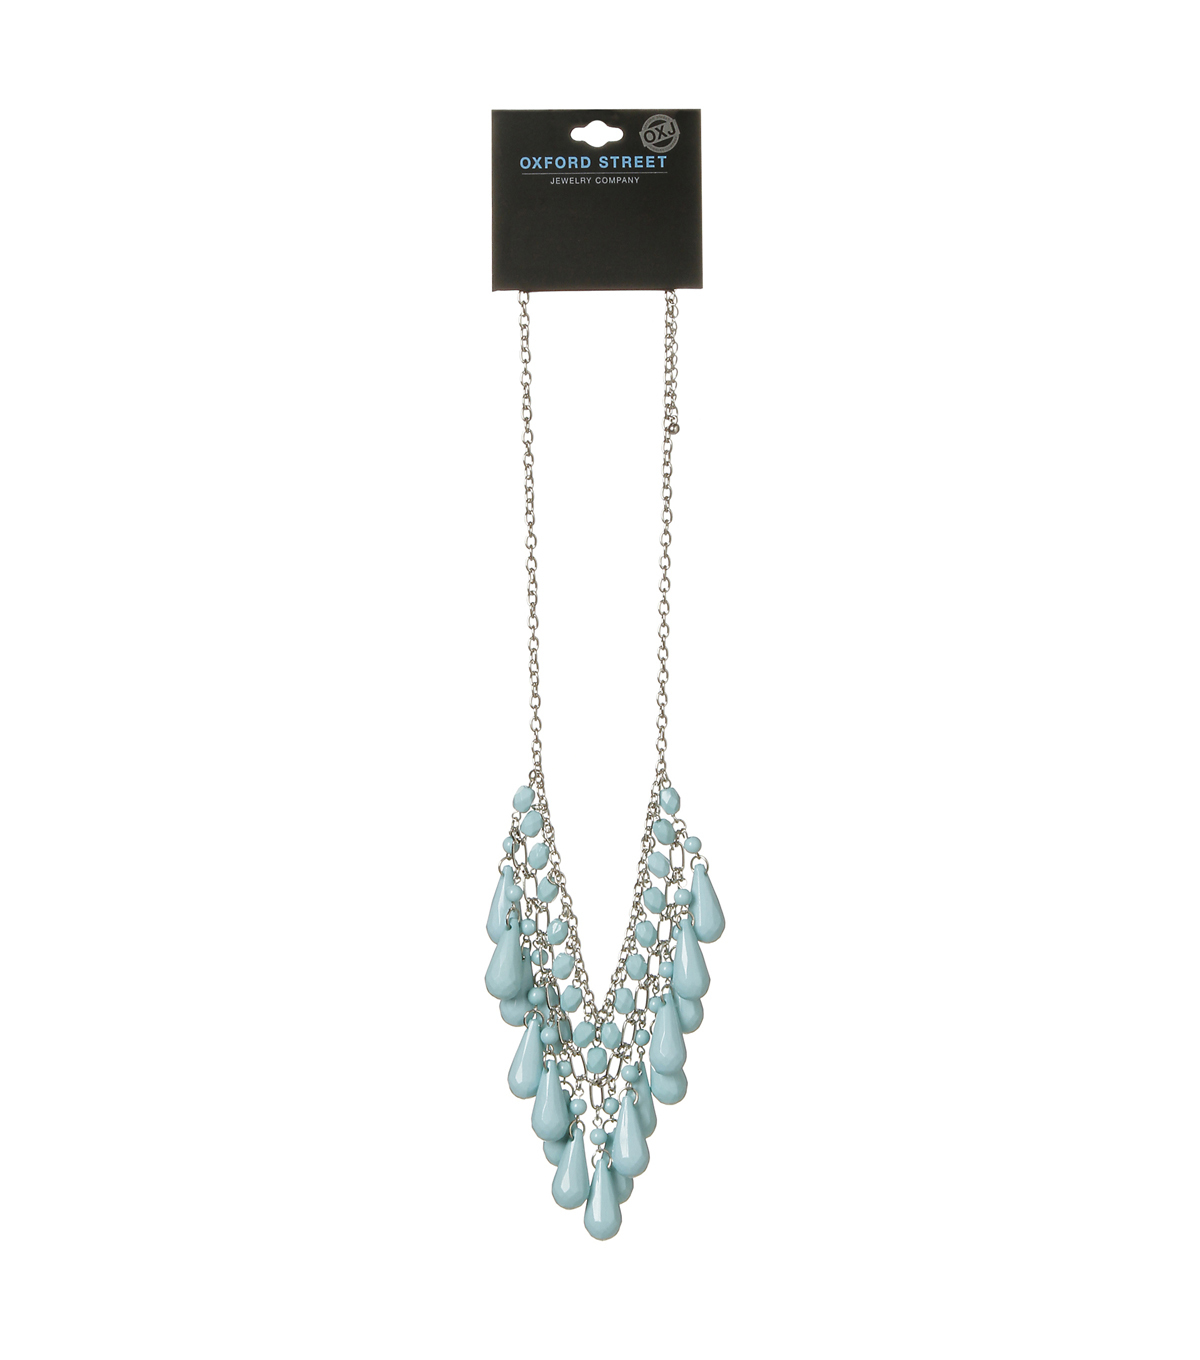 Oxford Street Jewelry Co. Light Blue Tear Drop Necklace w/Silver Plating